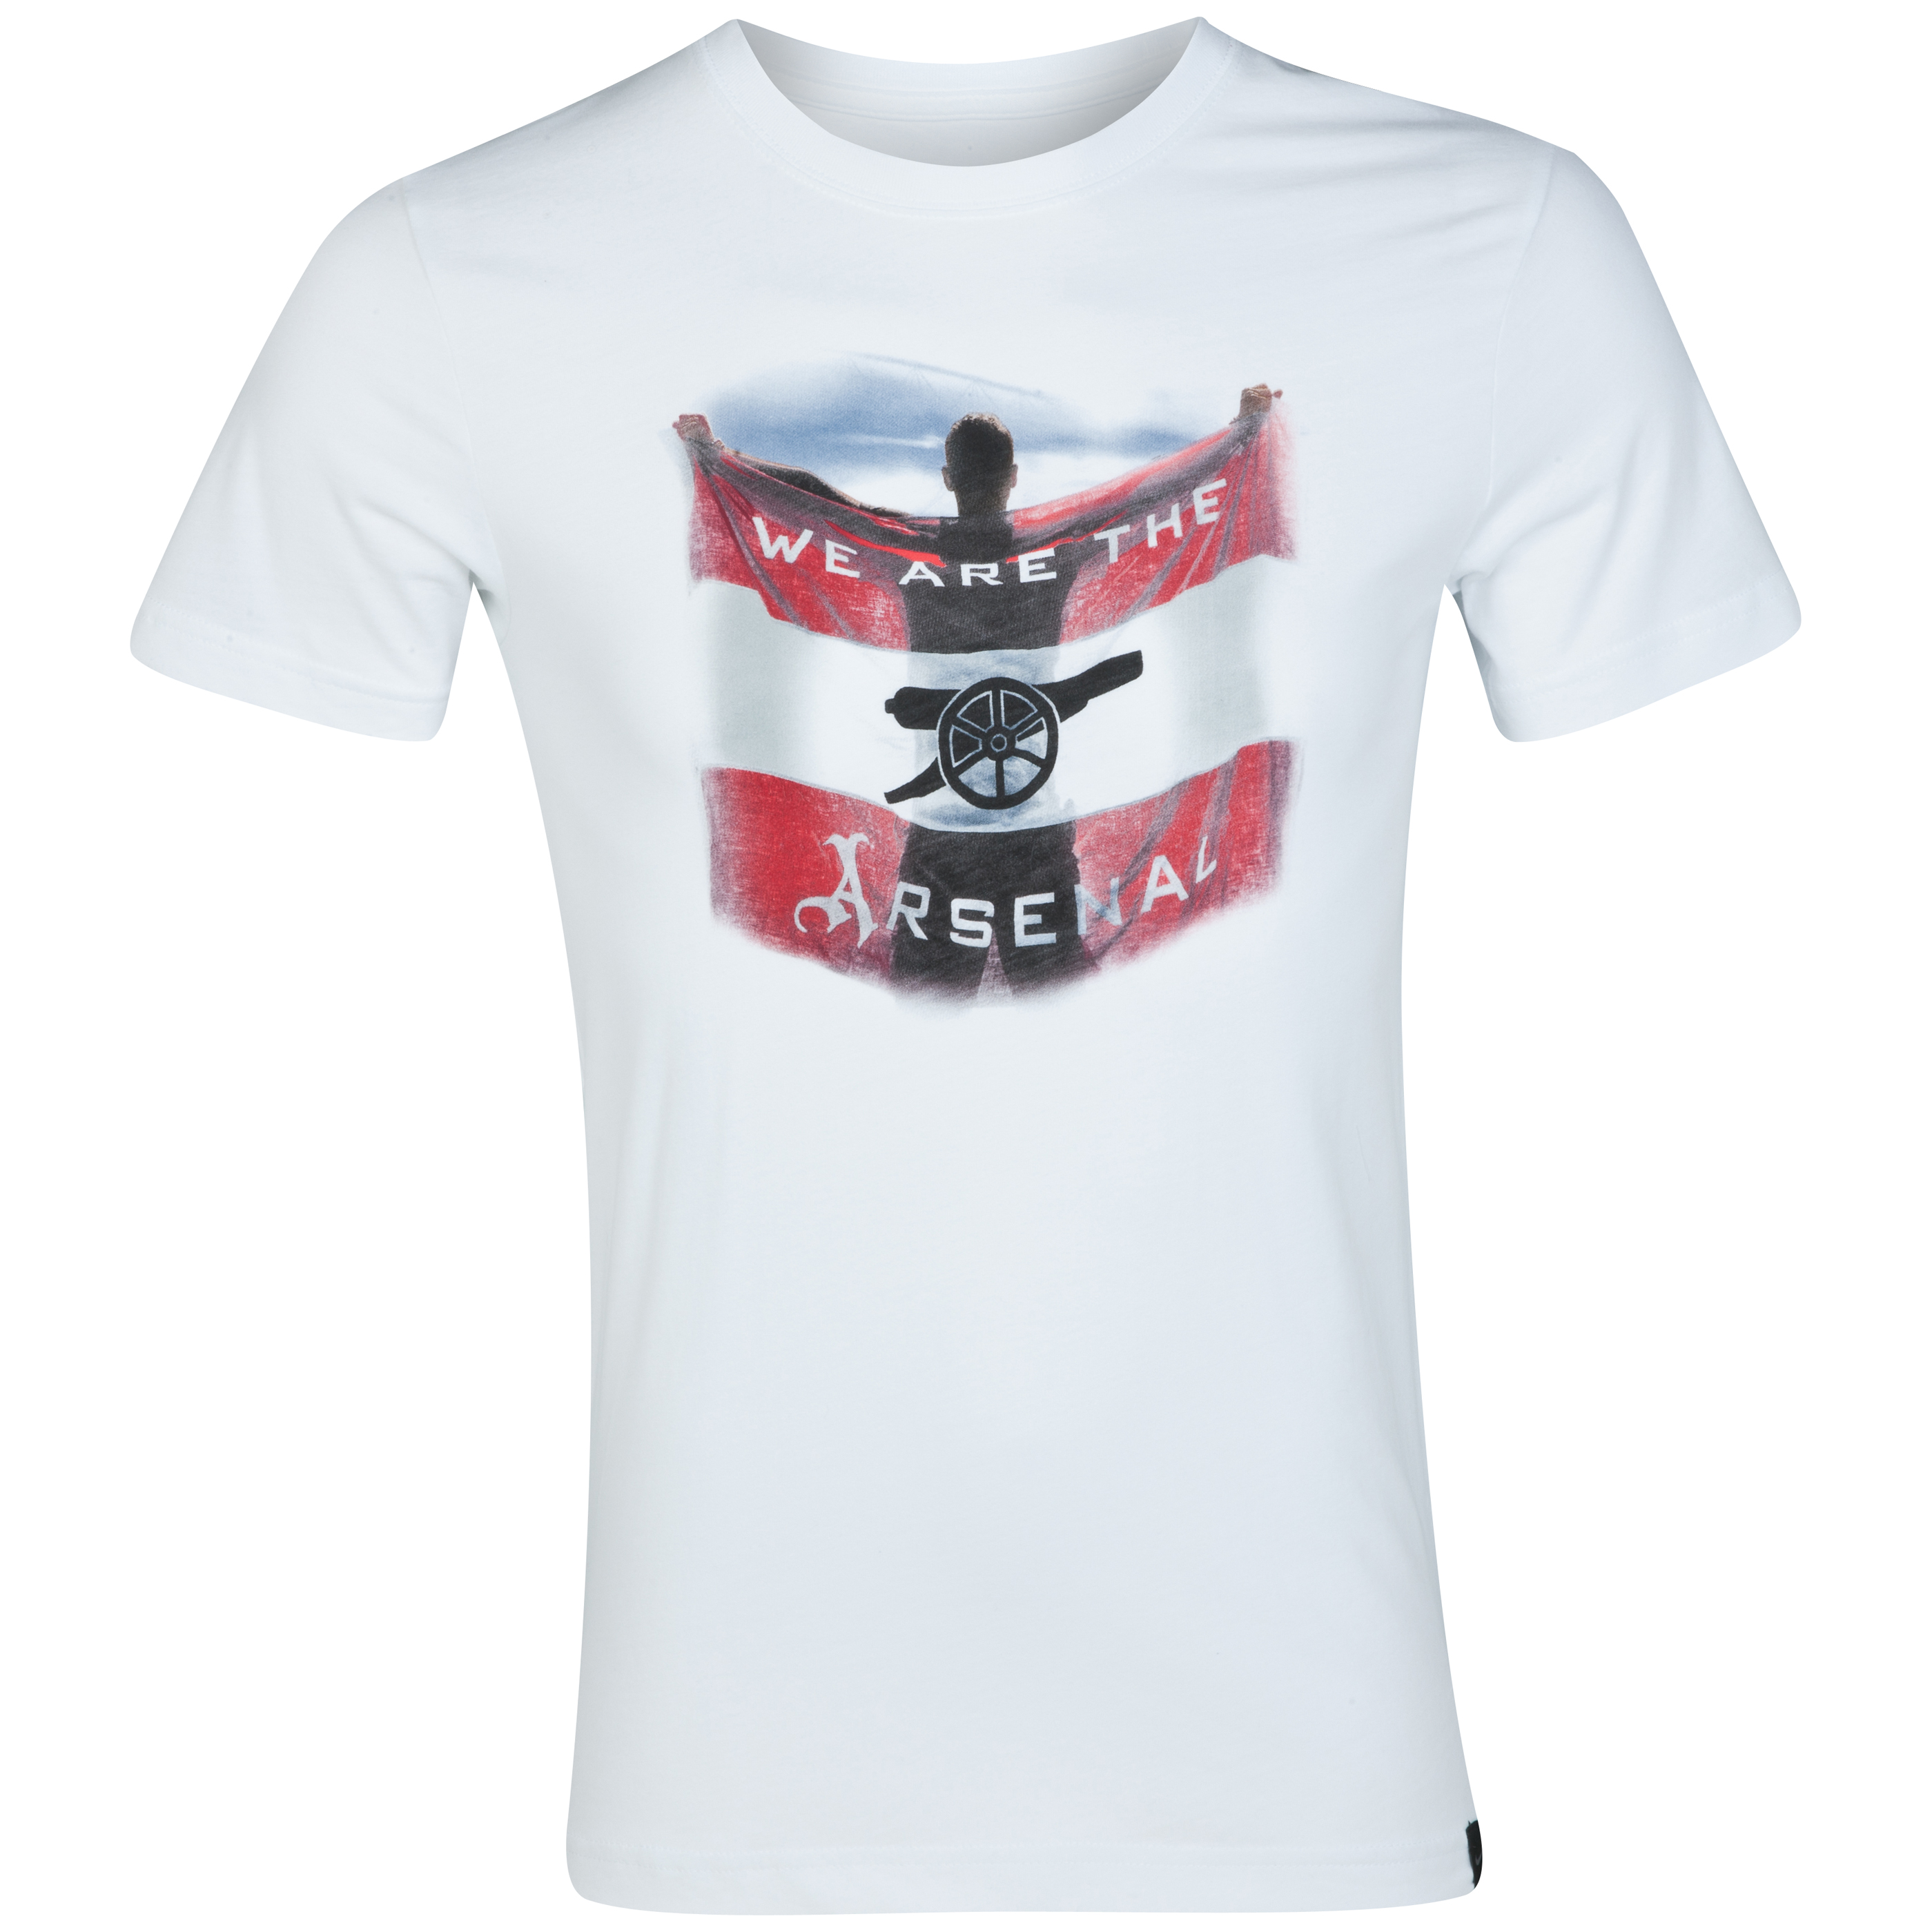 Arsenal Authentic T-Shirt - White/White